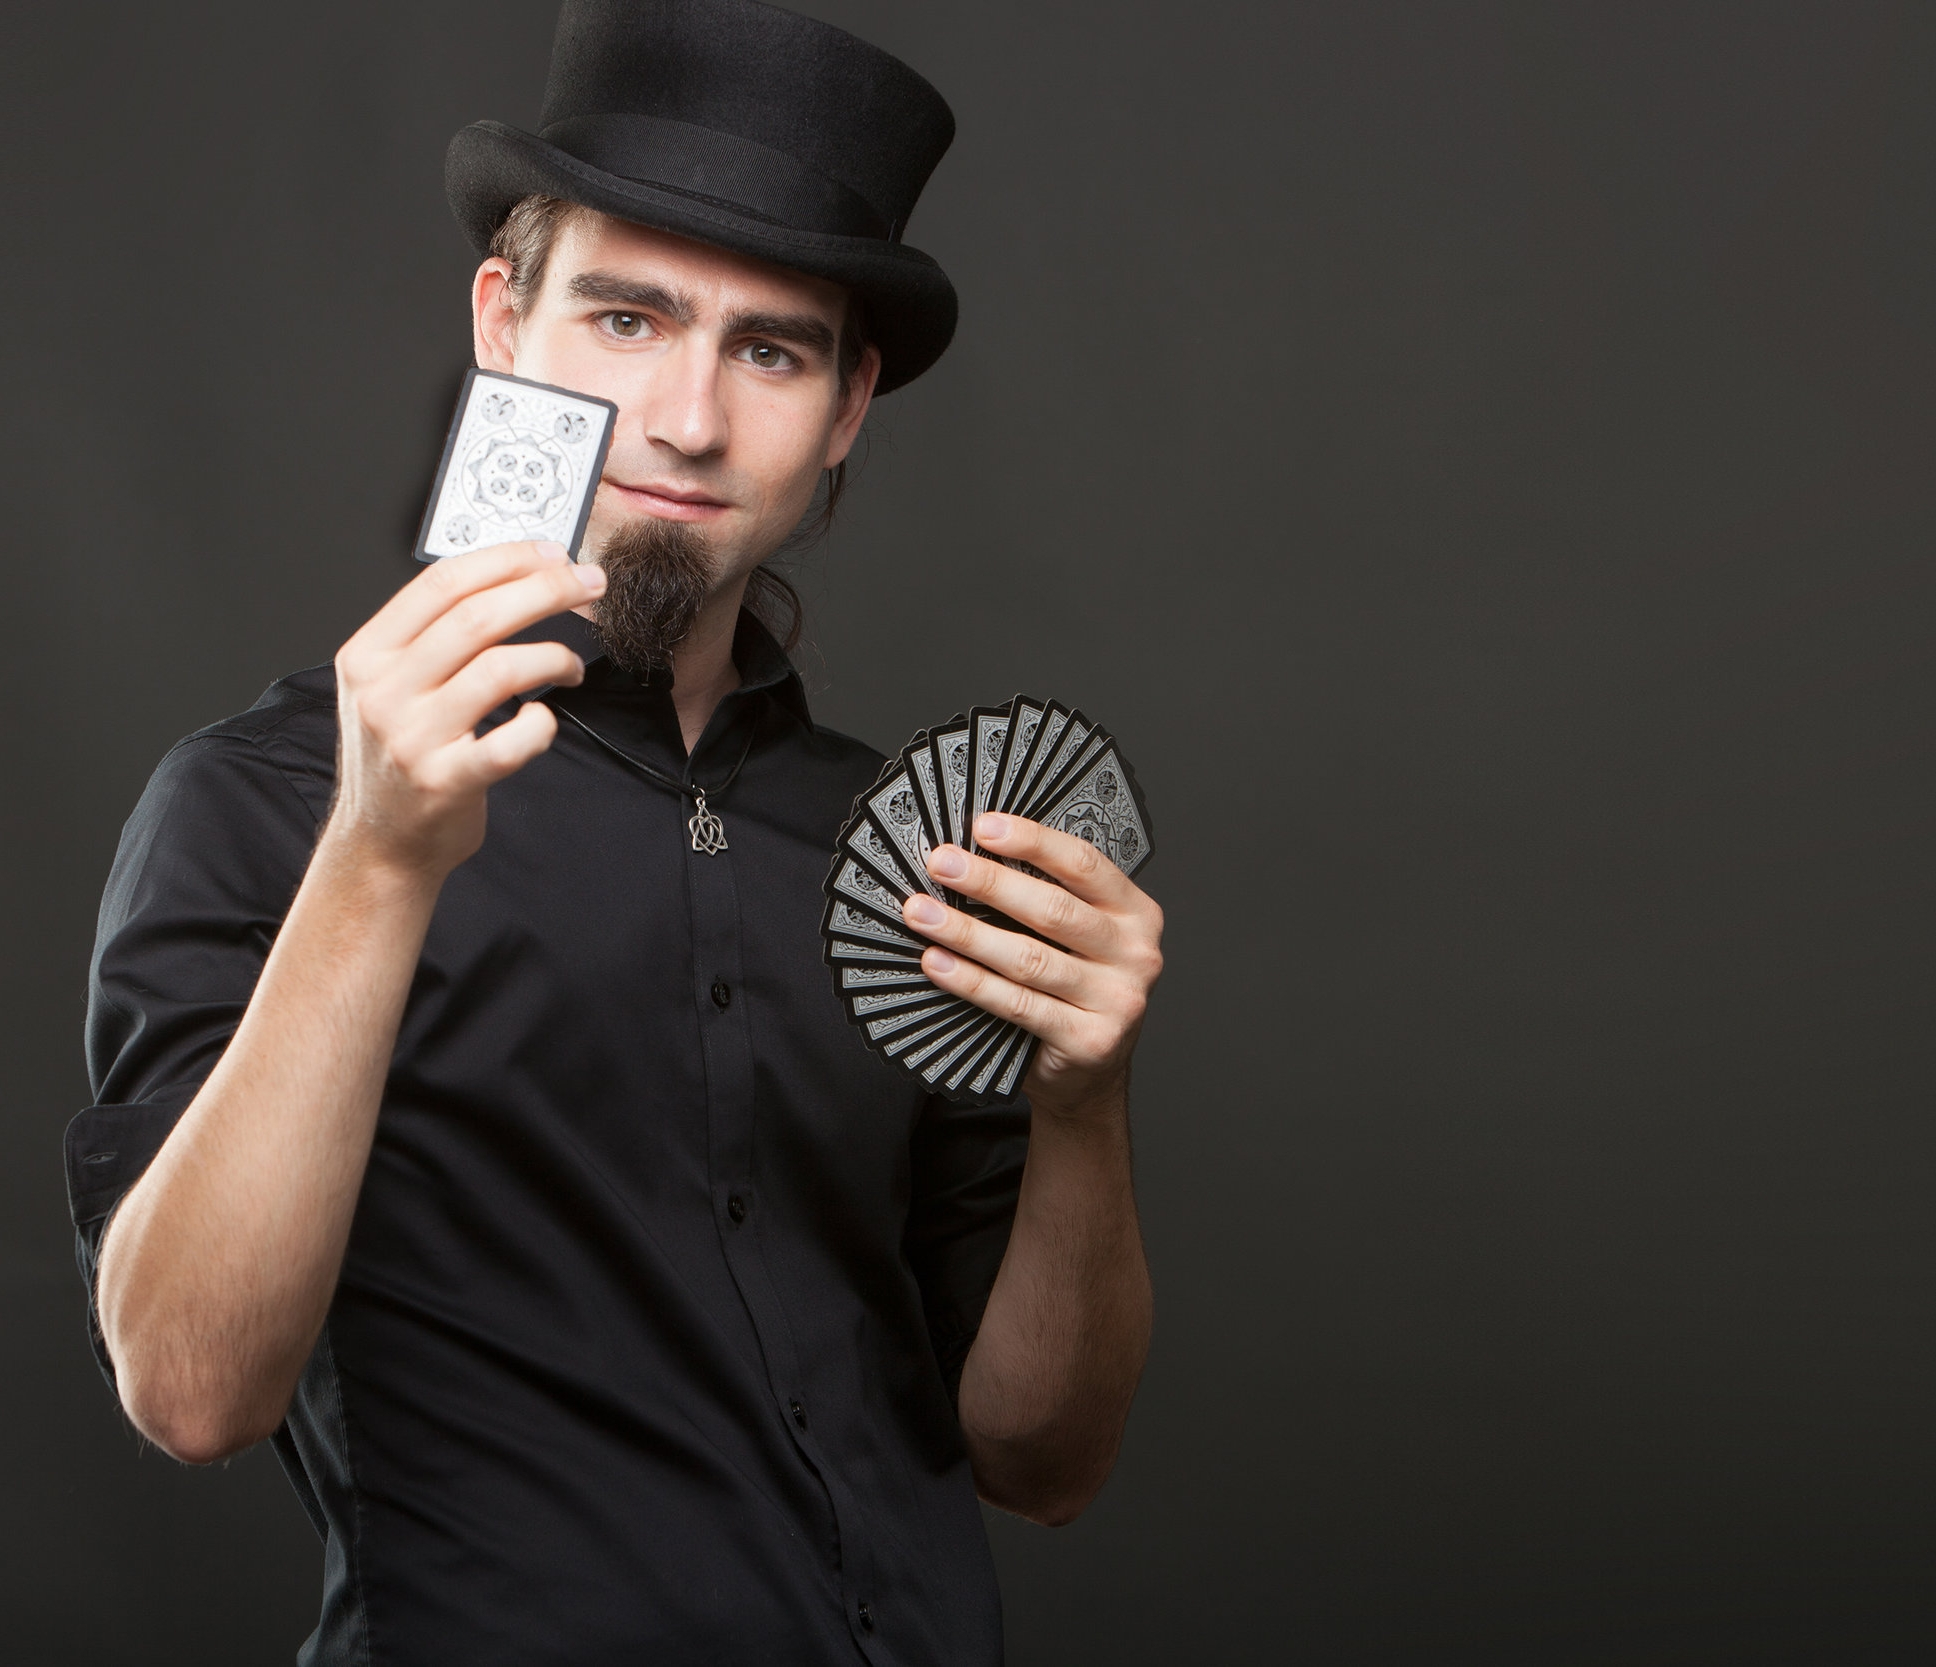 About Spencer: - Spencer Scurr is a Toronto-based magician with a talent for bringing magic right into the audience's own hands. Over the past 10 years, Spencer has brought his magic up-close to thousands of audiences at parties, company events, and festivals, as well as regular performances at Toronto's Harbourfront Center & Detroit's Motor City Casino.Always striving to perfect his craft, he has studied and trained in Las Vegas with some of the greatest minds in magic.Spencer believes that the best magic shouldn't just amaze the audience, but should also leave each person with a story they can't wait to tell.With this philosophy, some coins, a deck of cards, some ropes, and plenty of charm, Spencer is always ready to make each performance unforgettable.